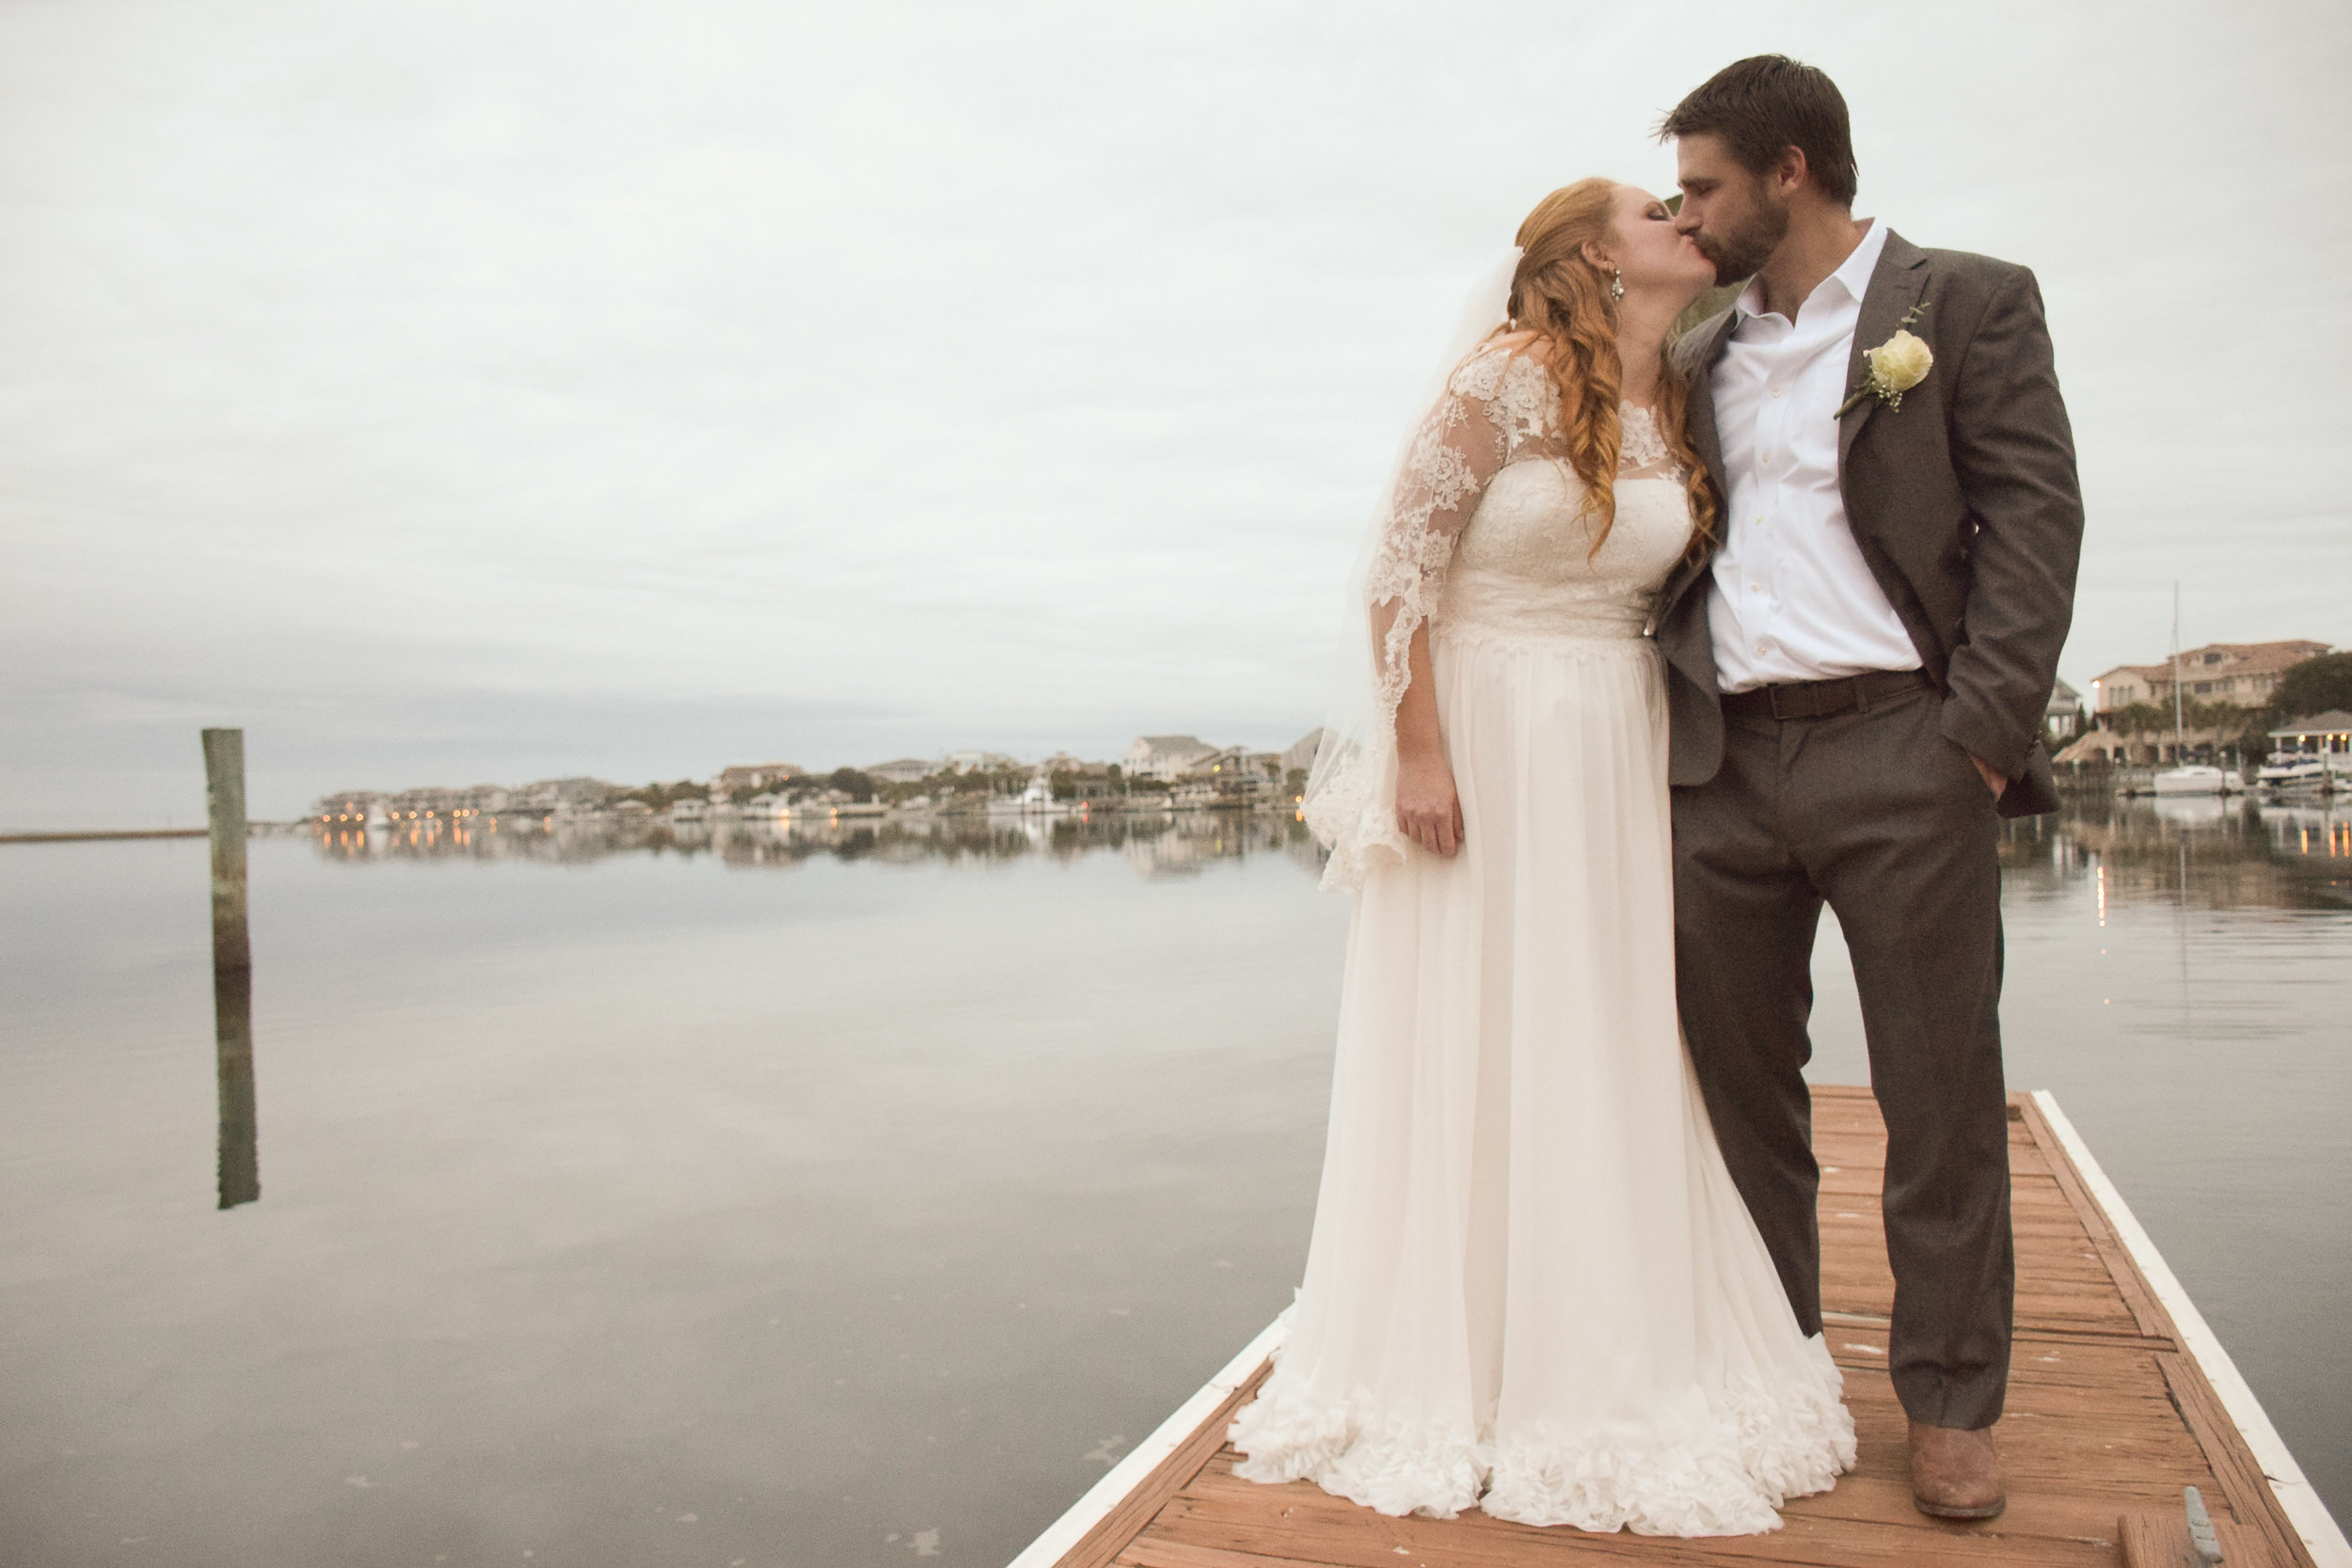 - Bride and groom sharing a kiss on a pier at Wrightsville Beach, NC. Ocean and beach houses in background.